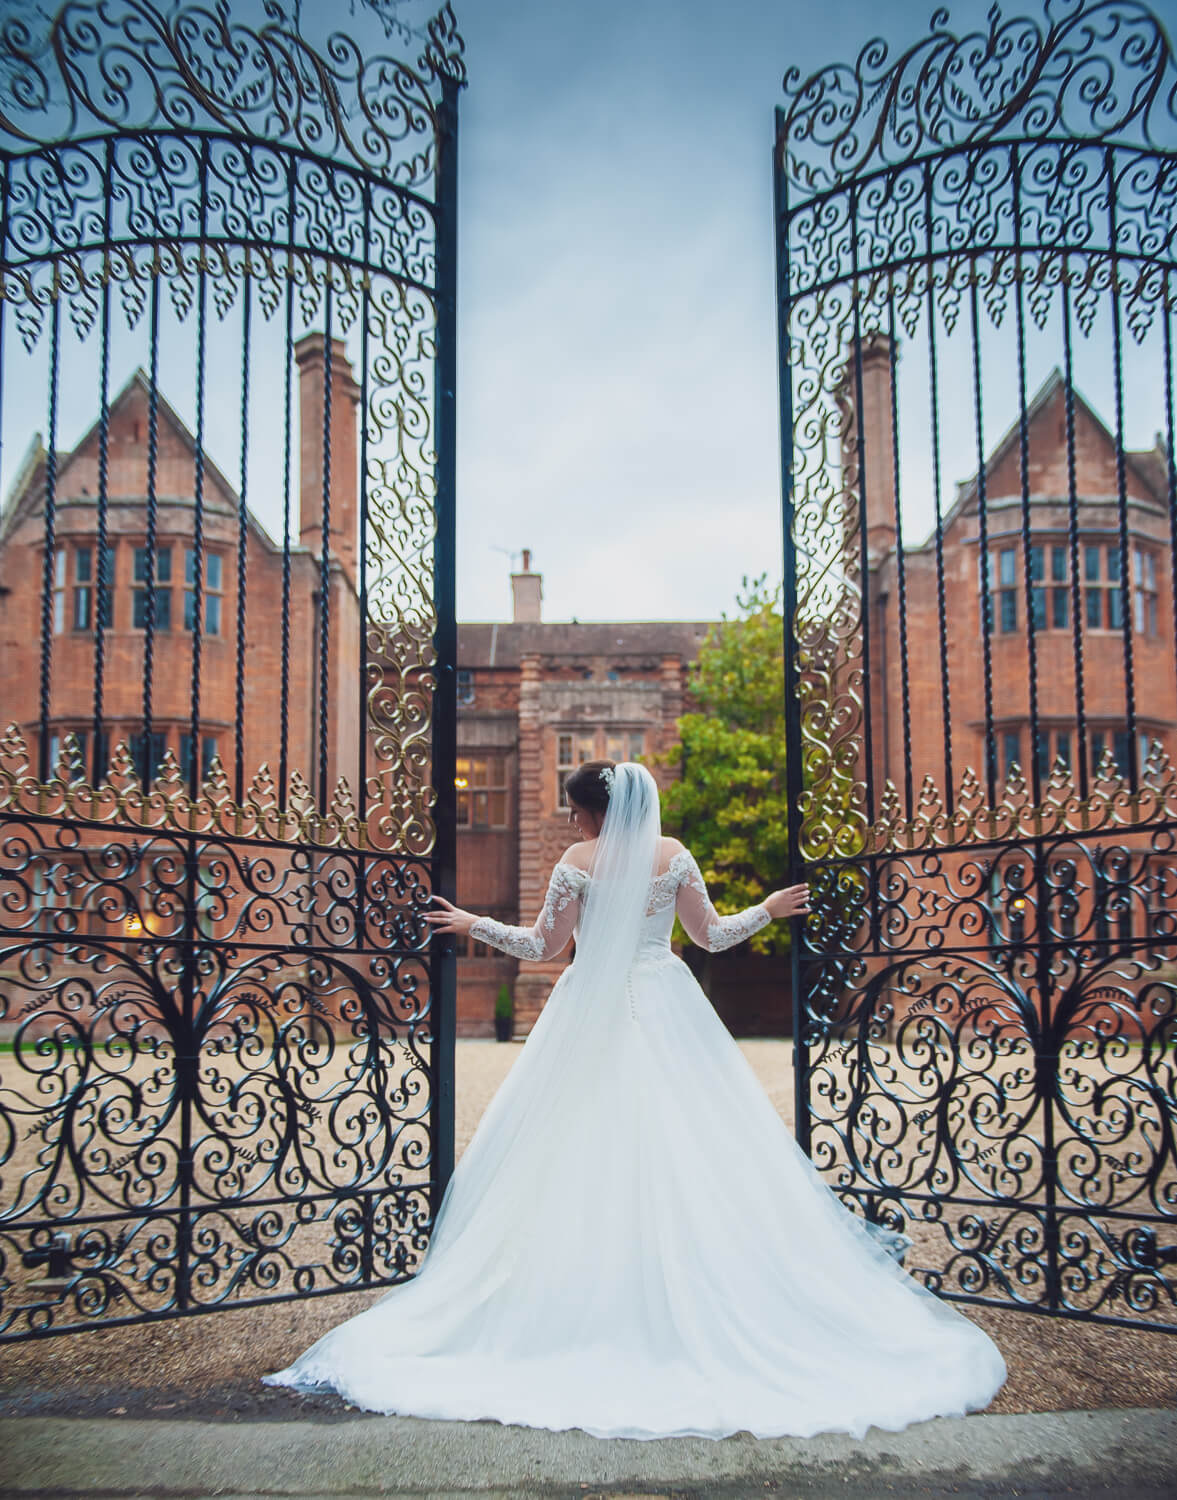 Bridle Open Gate for WEDDING PHOTOGRAPHY